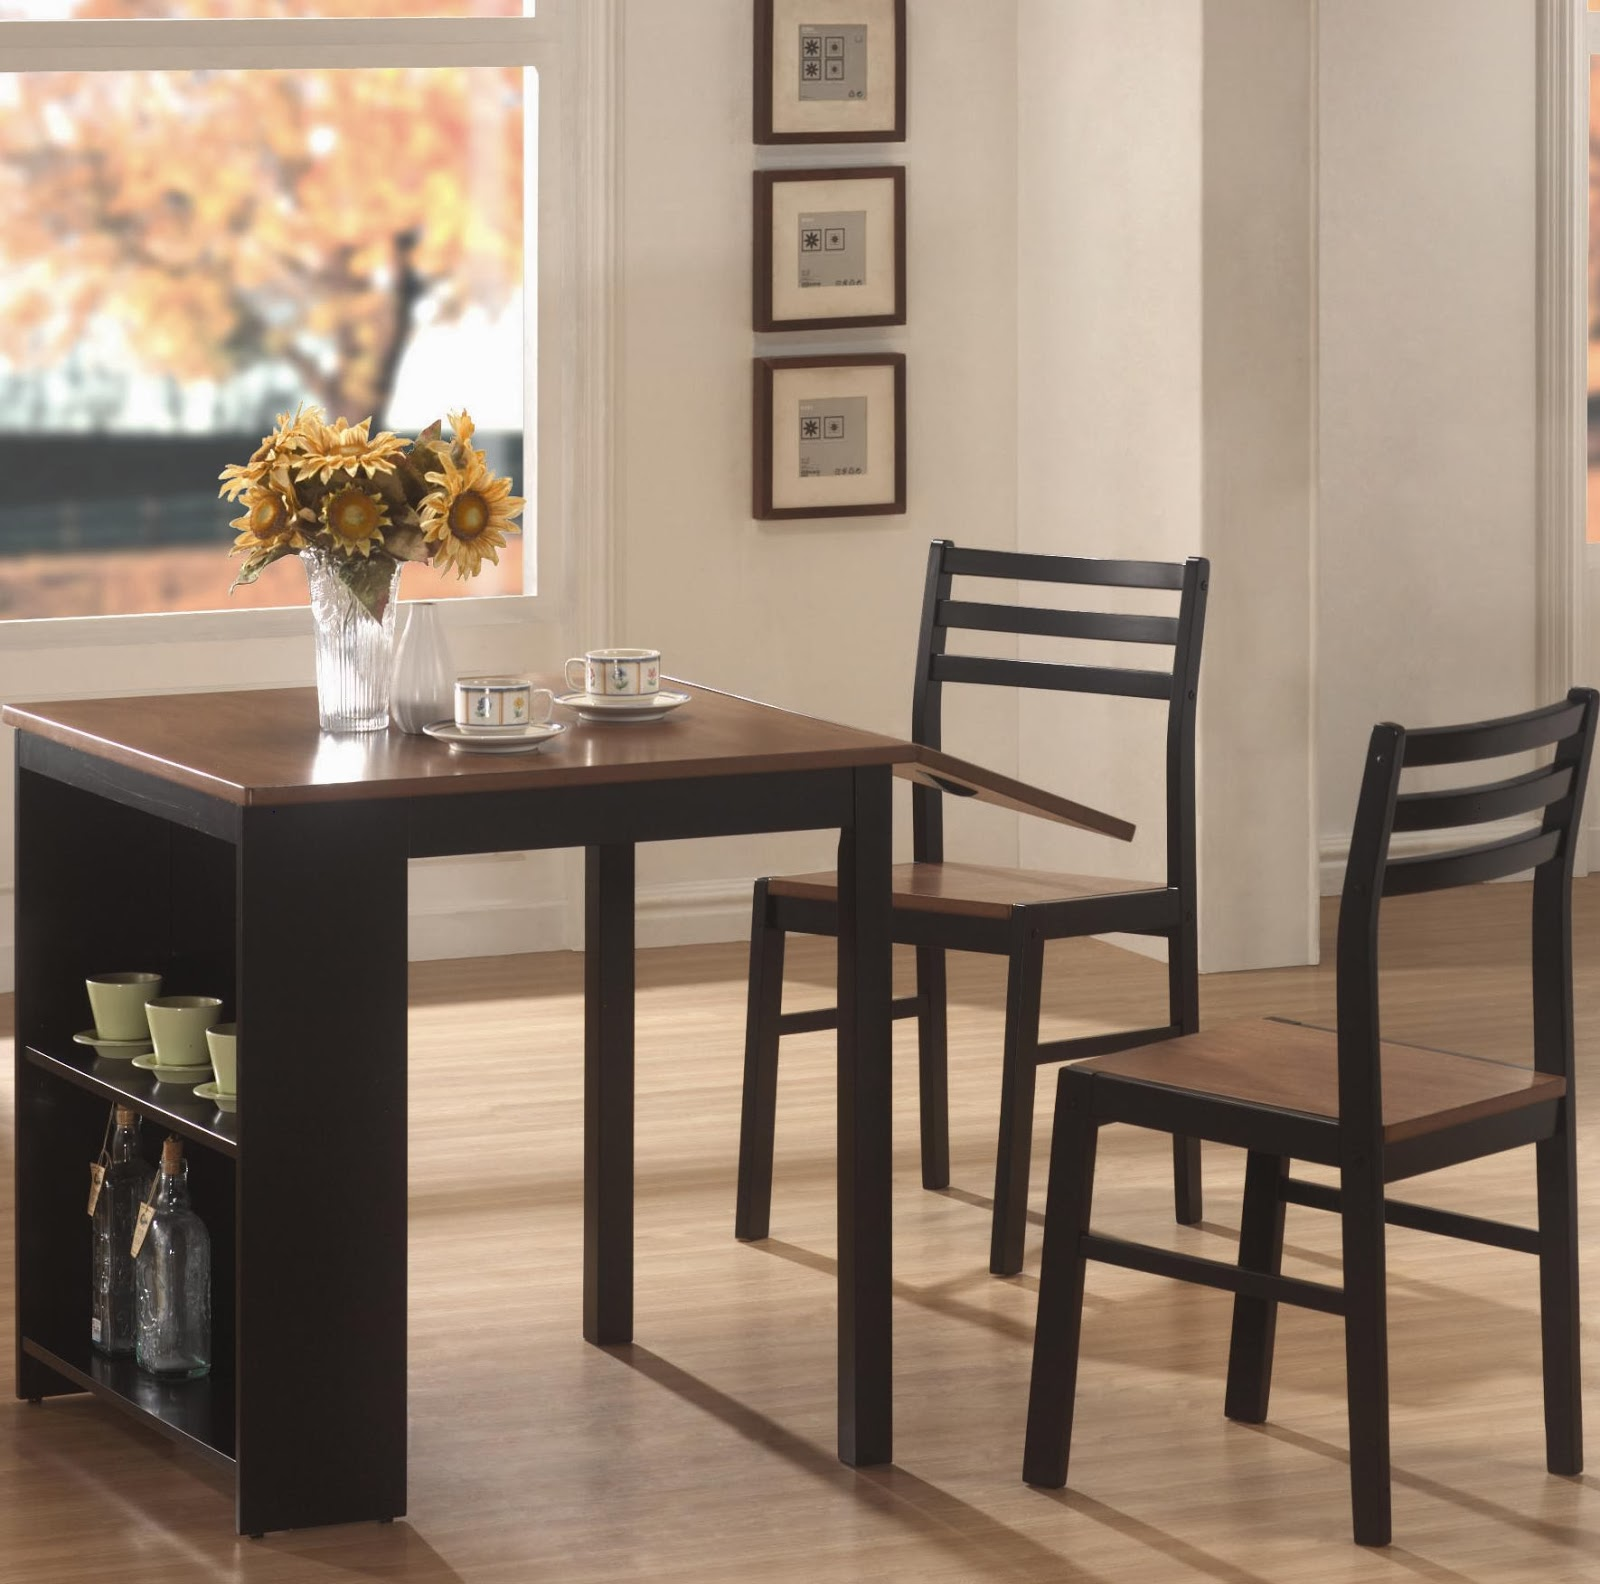 emejing small kitchen table sets ideas - mericamedia